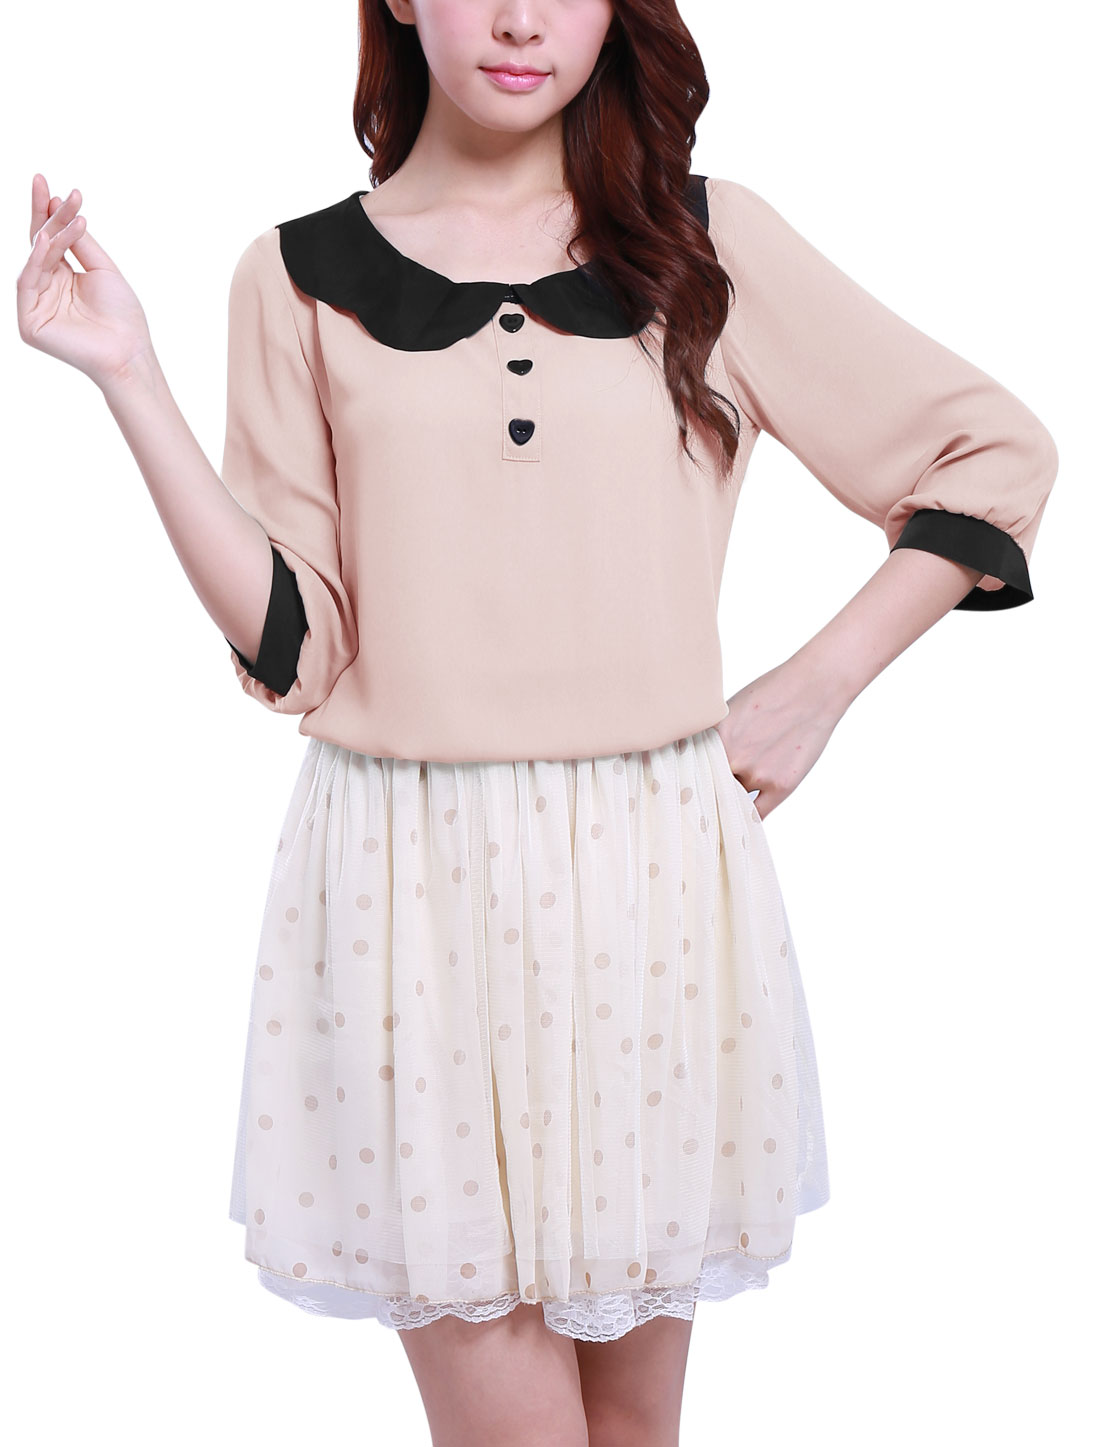 Woman Peter Pan Collar 3/4 Sleeve Pullover Blouse Tops Pink S